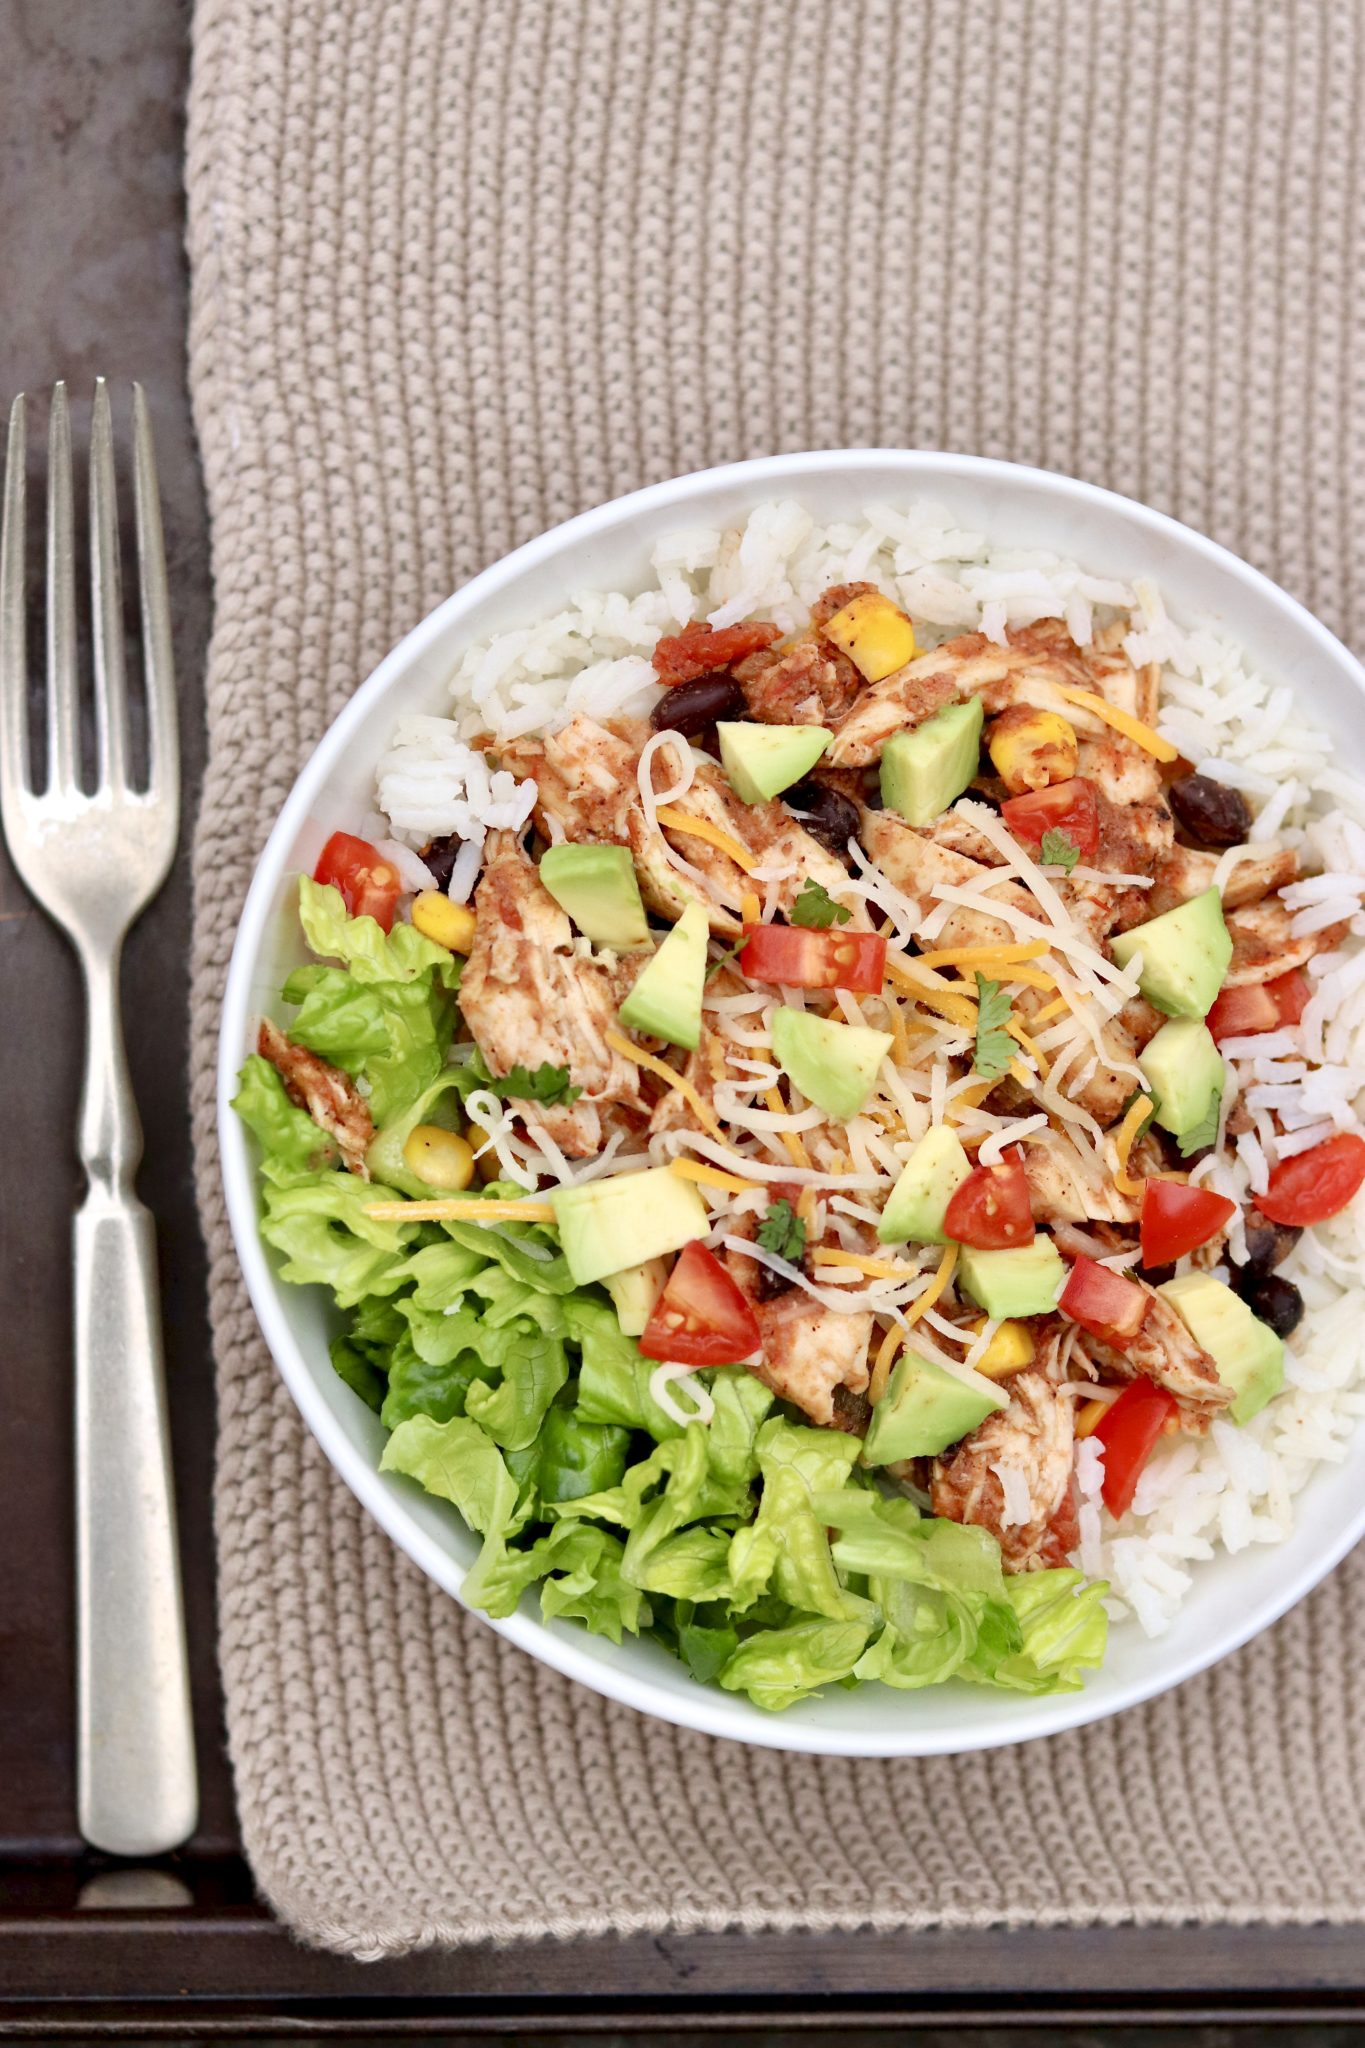 Slow Cooker Taco Chicken - Quick prep freezer bags of this flavor-packed meal will come to yourrescue on busy weeknights and any time you want tobring a meal to a friend. Family friendly and endlessly versatile!